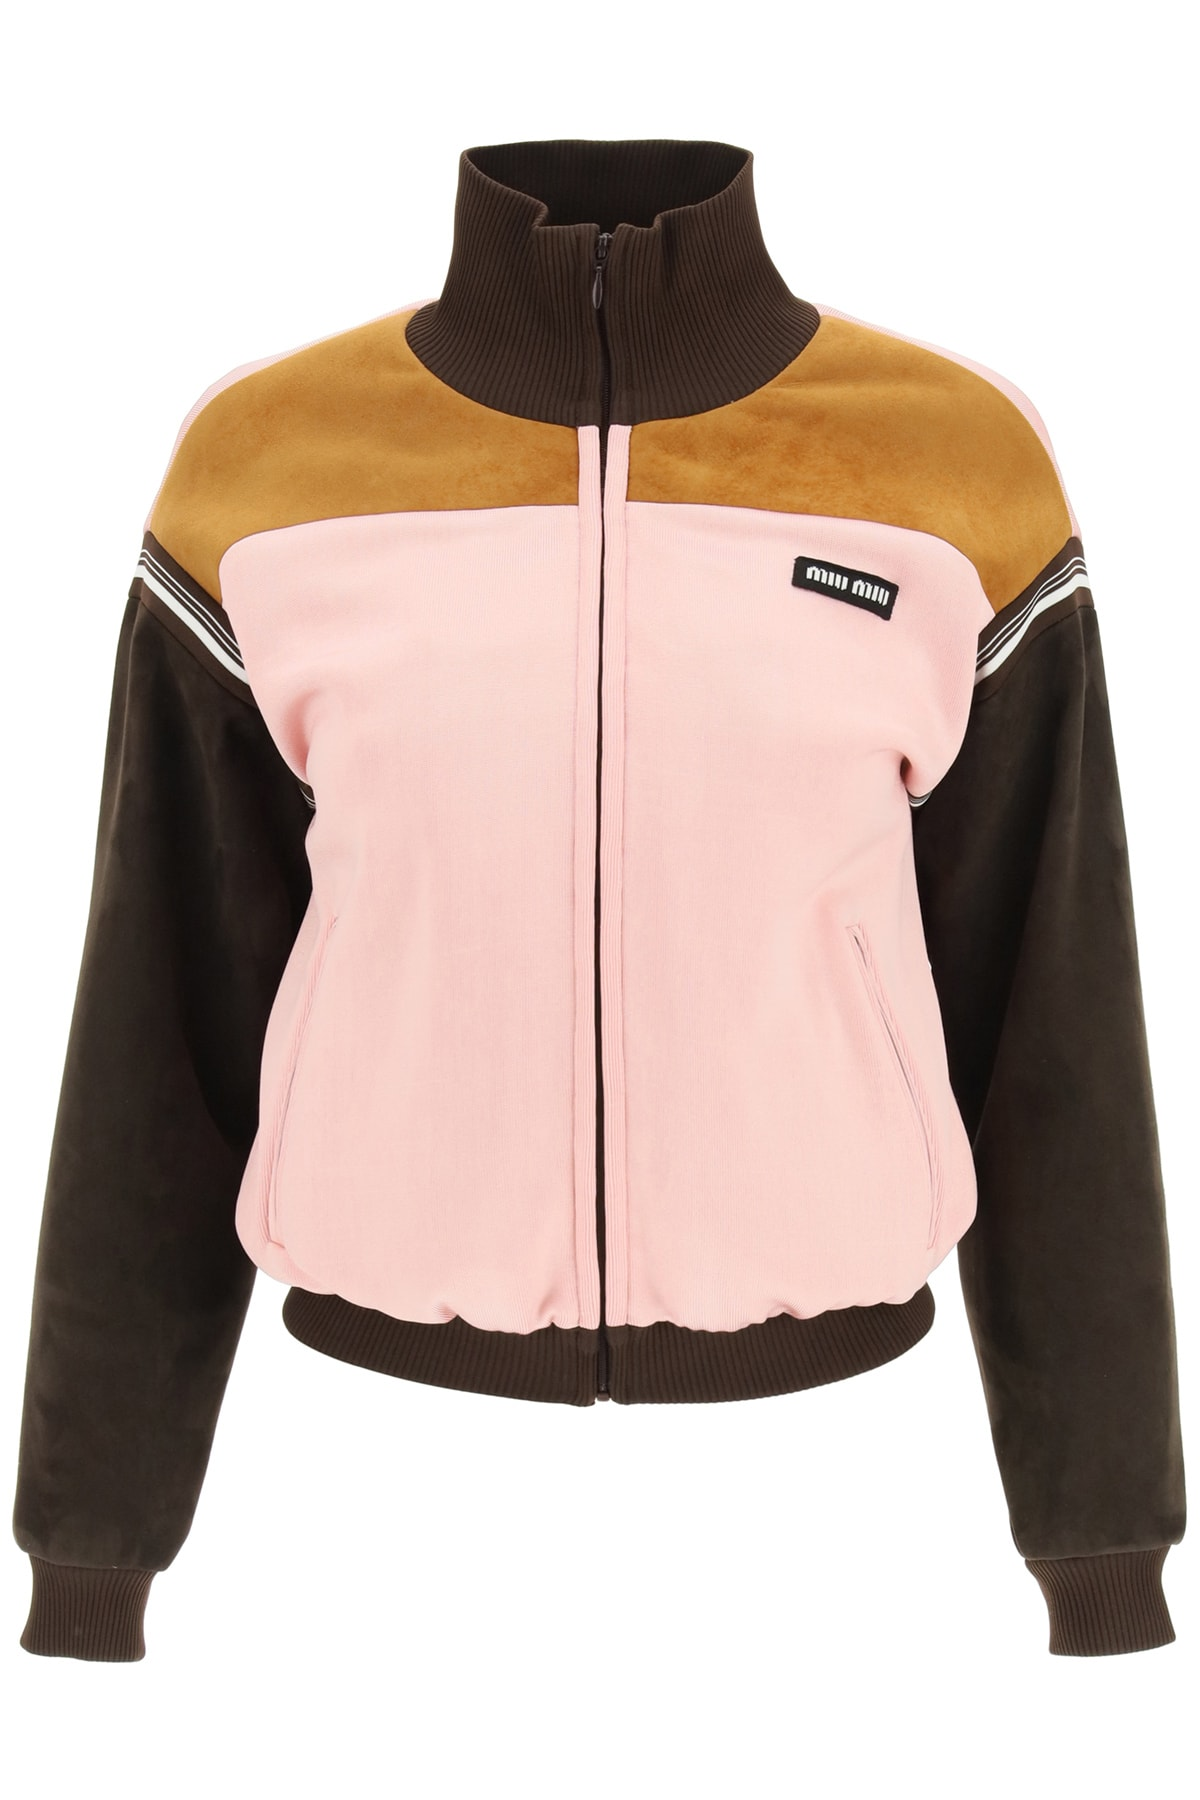 Miu Miu BLOUSON IN LUX JERSEY WITH SUEDE